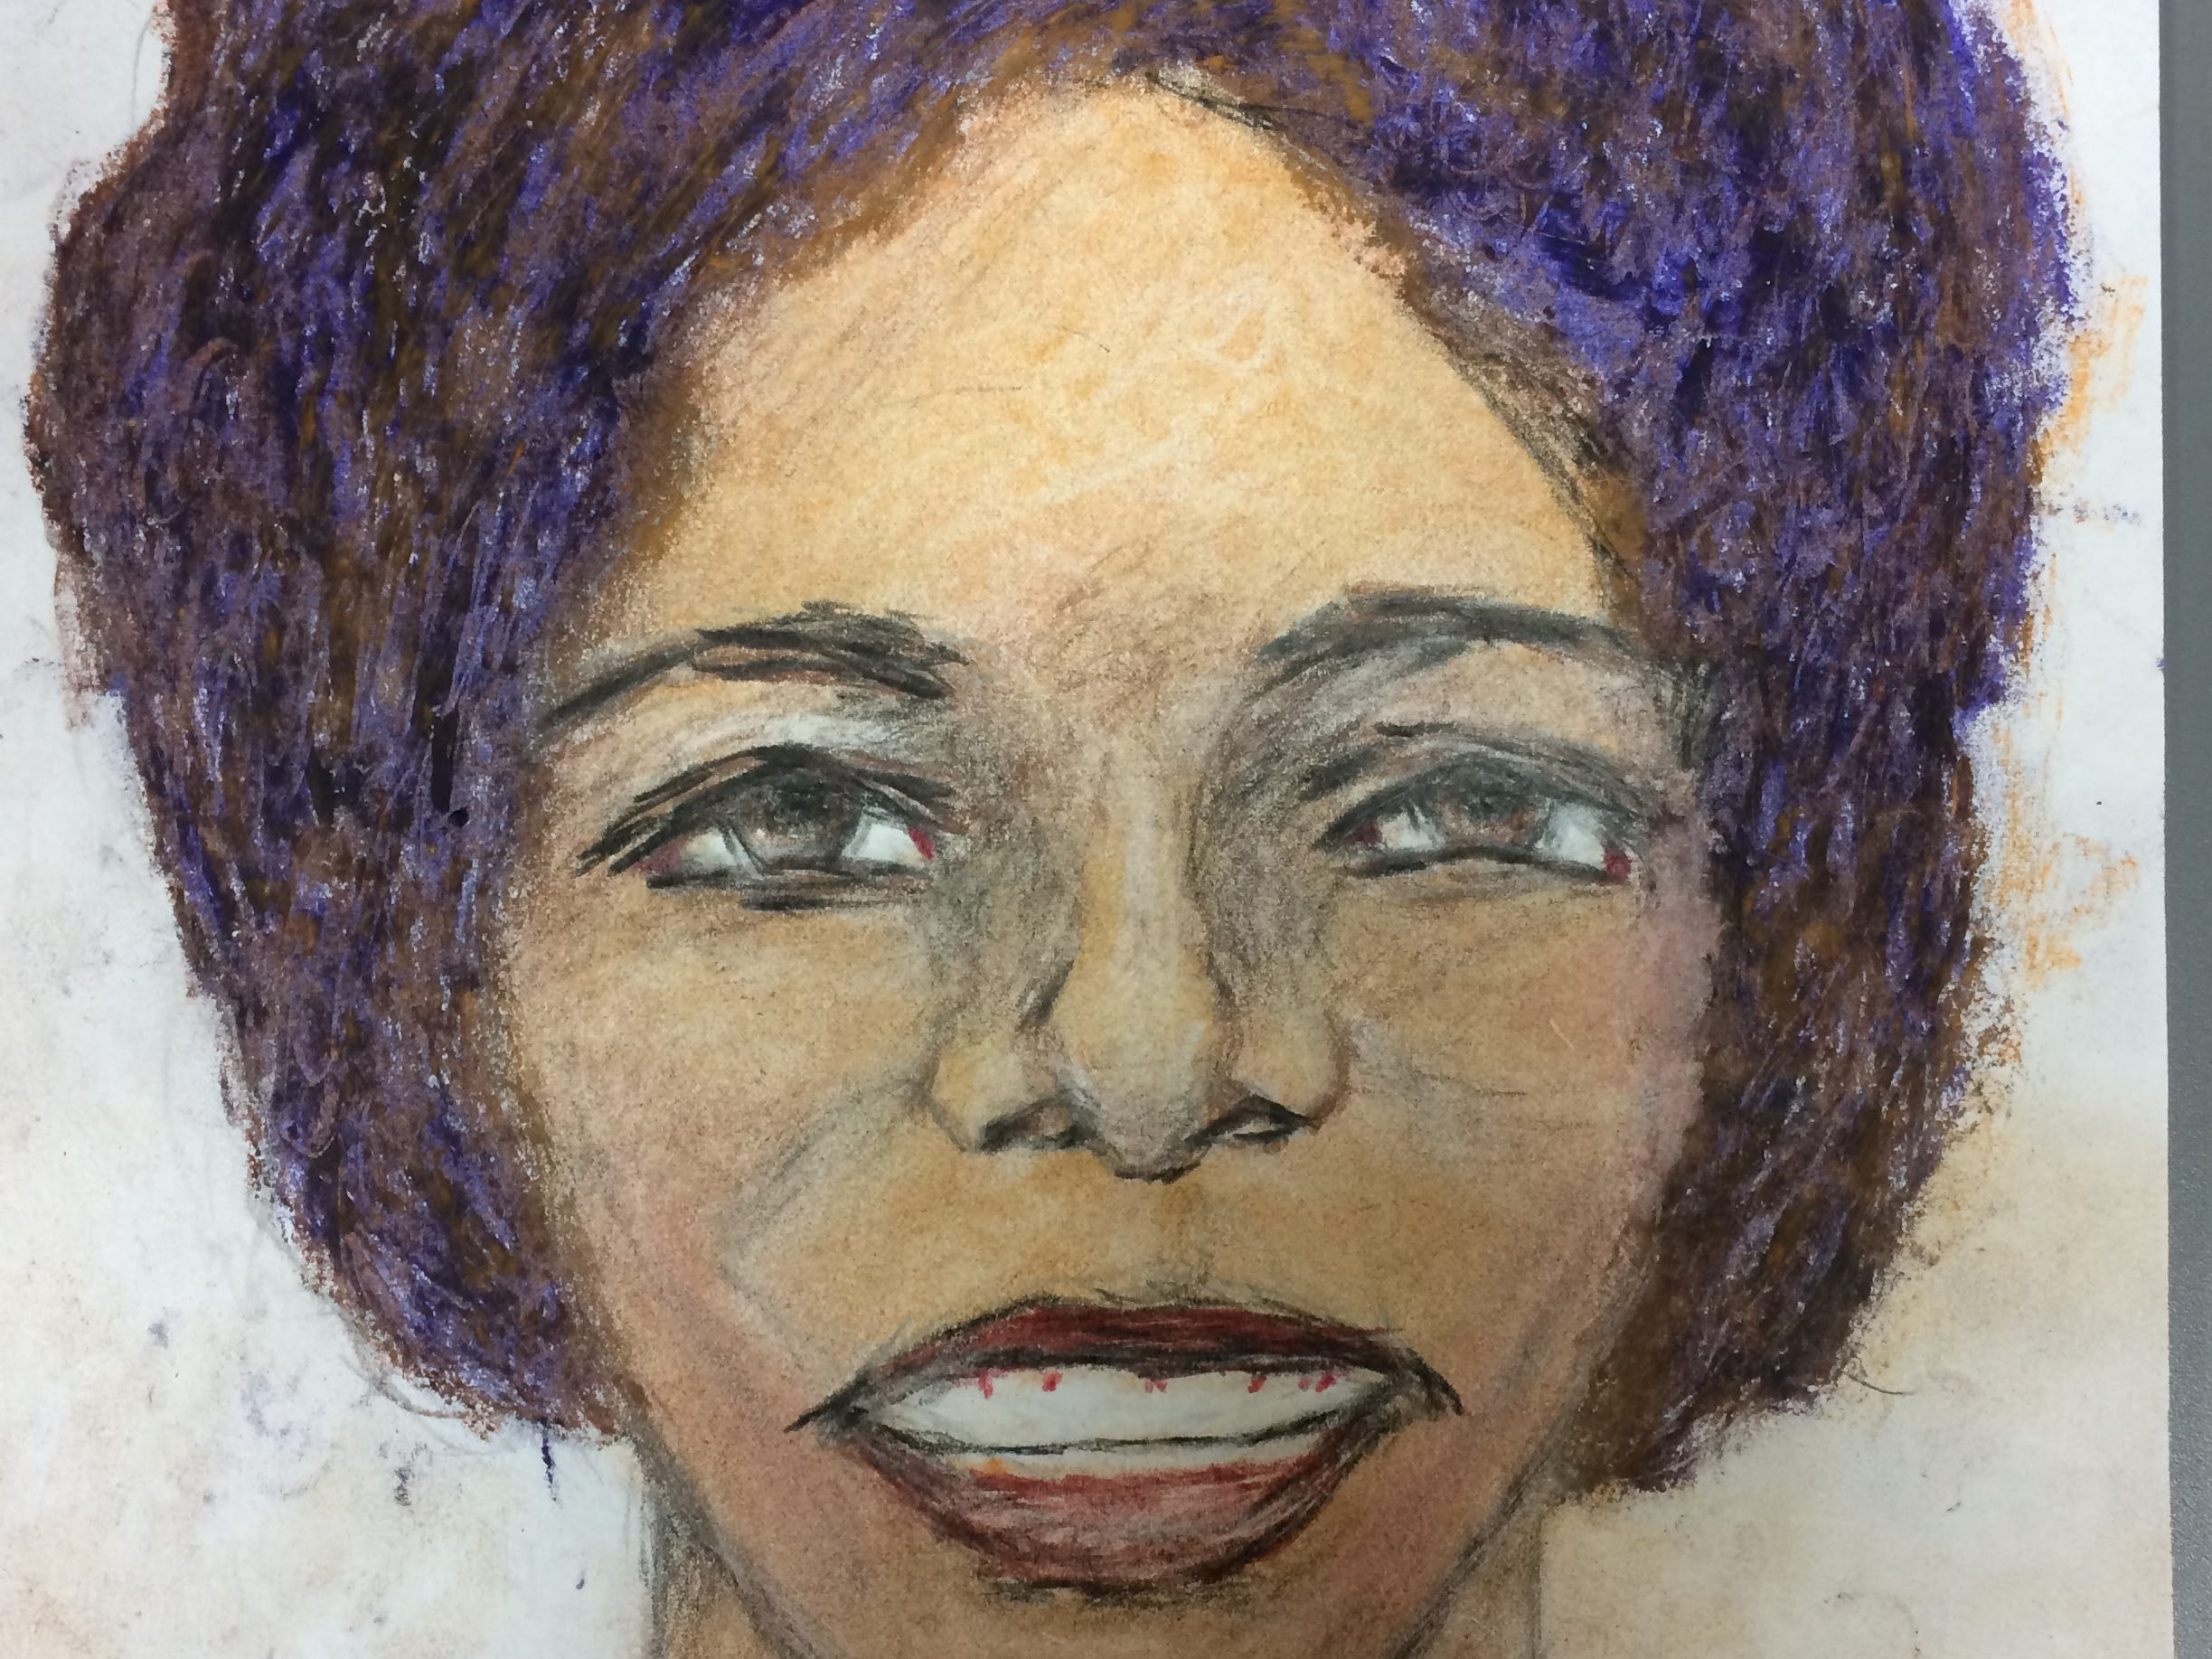 Serial killer Samuel Little drew this woman who he says he murdered at some point between 1976 and 1979 in Houston, Texas. Little told authorities she was a black female between 25 and 28 years old.